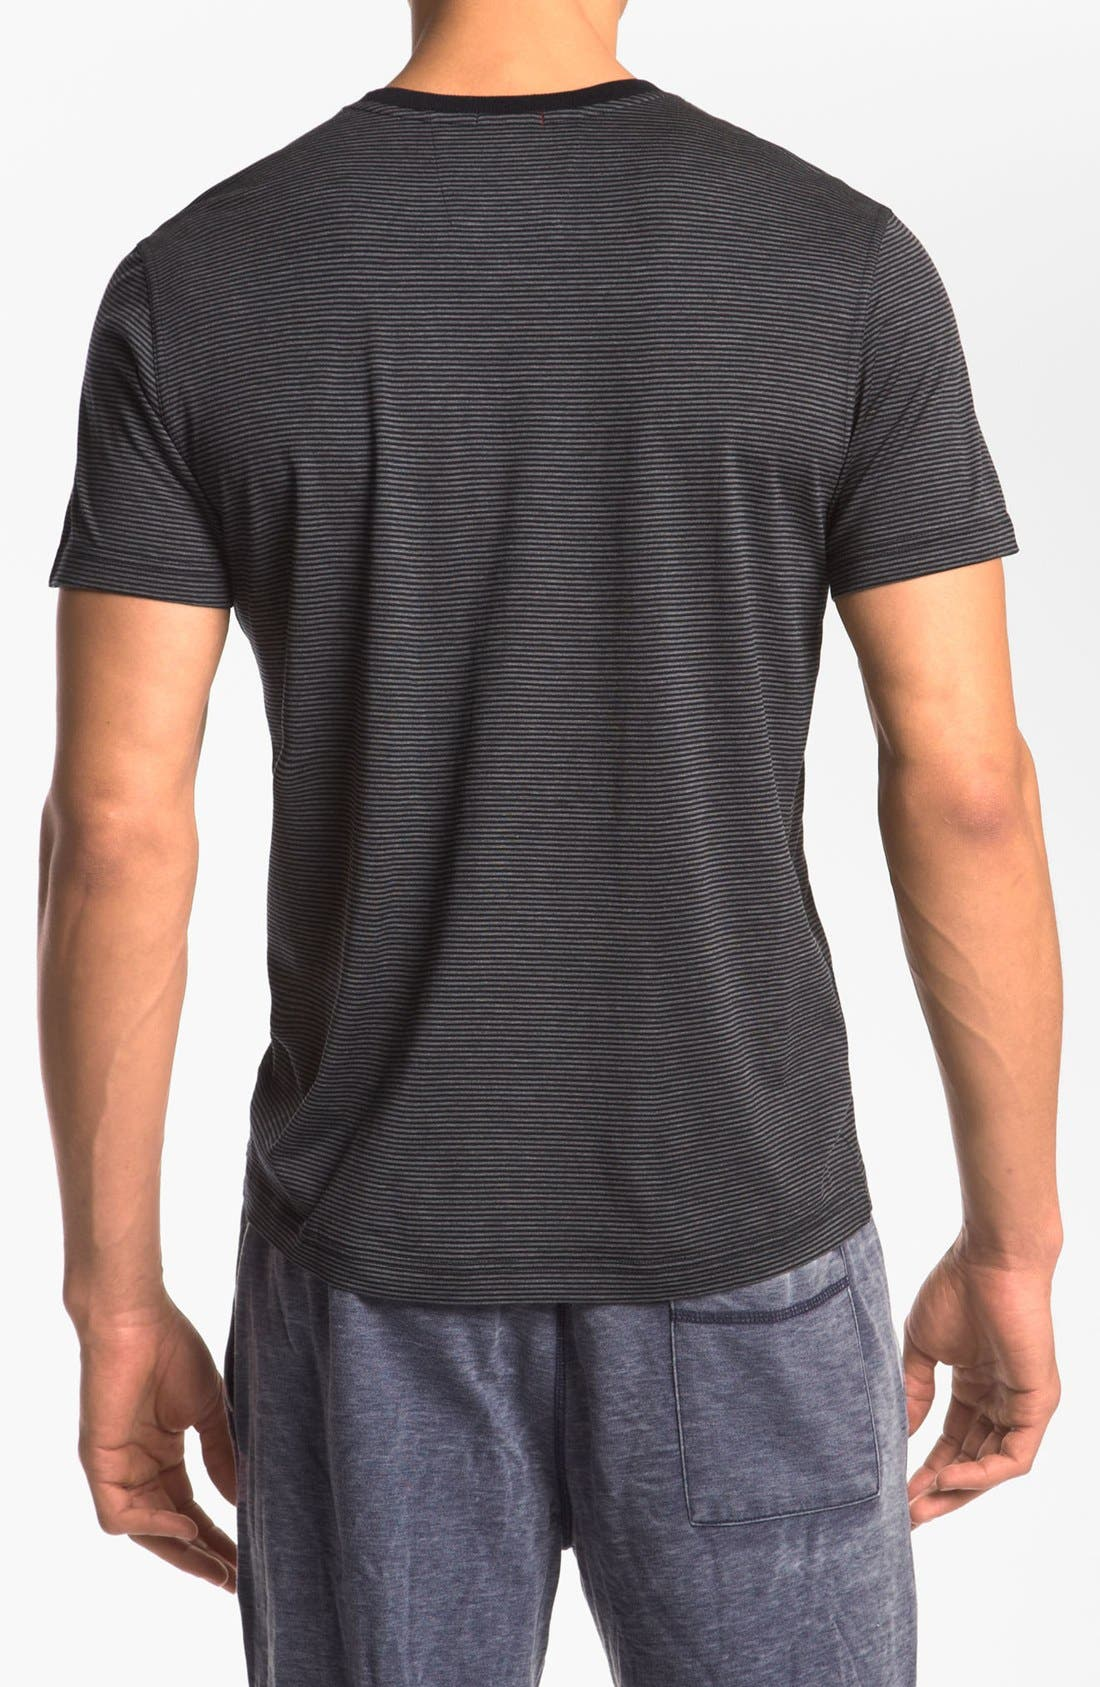 Alternate Image 2  - Daniel Buchler Silk & Cotton V-Neck T-Shirt